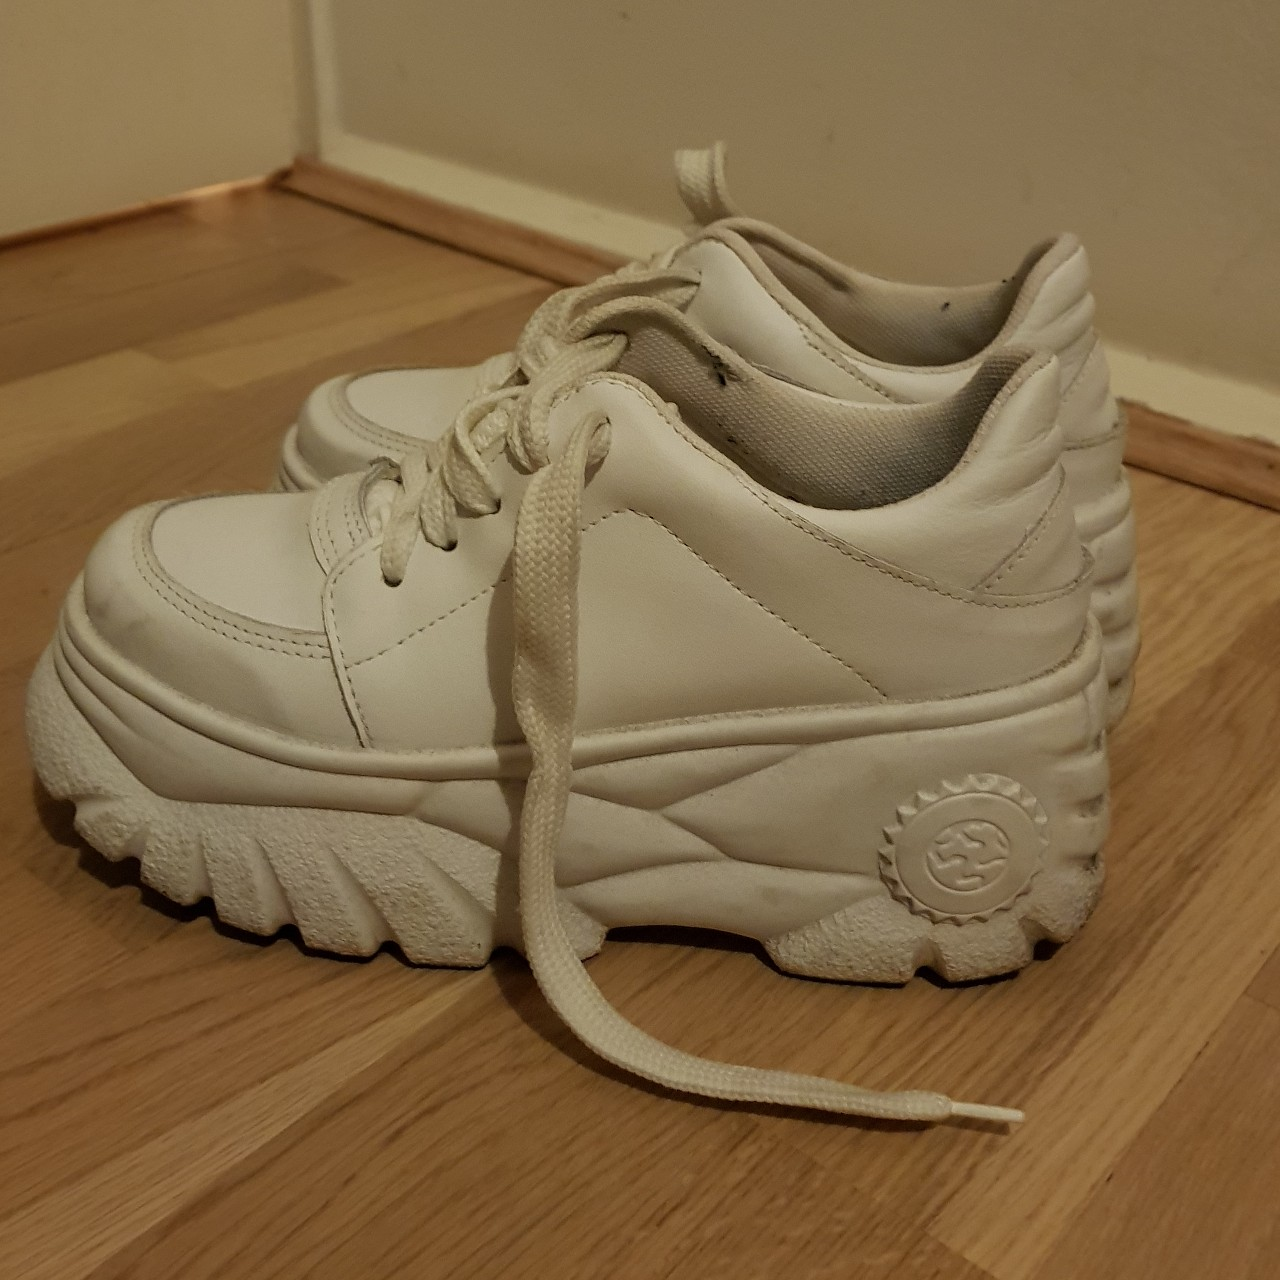 Schuh DIVA trainers in white, very